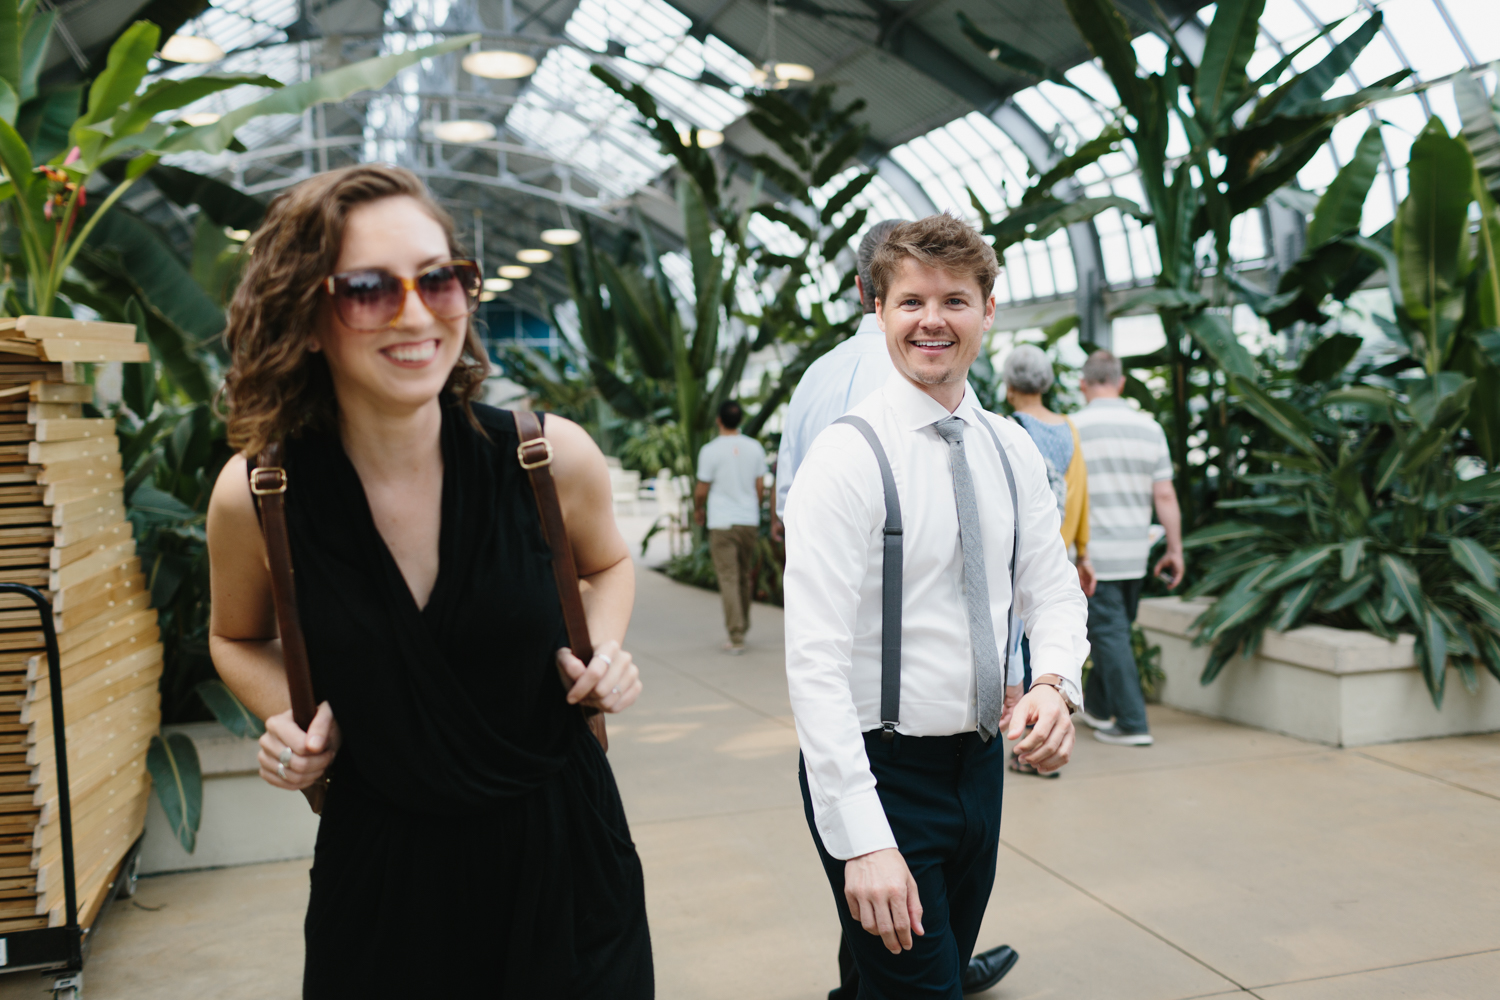 Chicago Garfield Park Conservatory Wedding by Northern Michigan Photographer Mae Stier-029.jpg